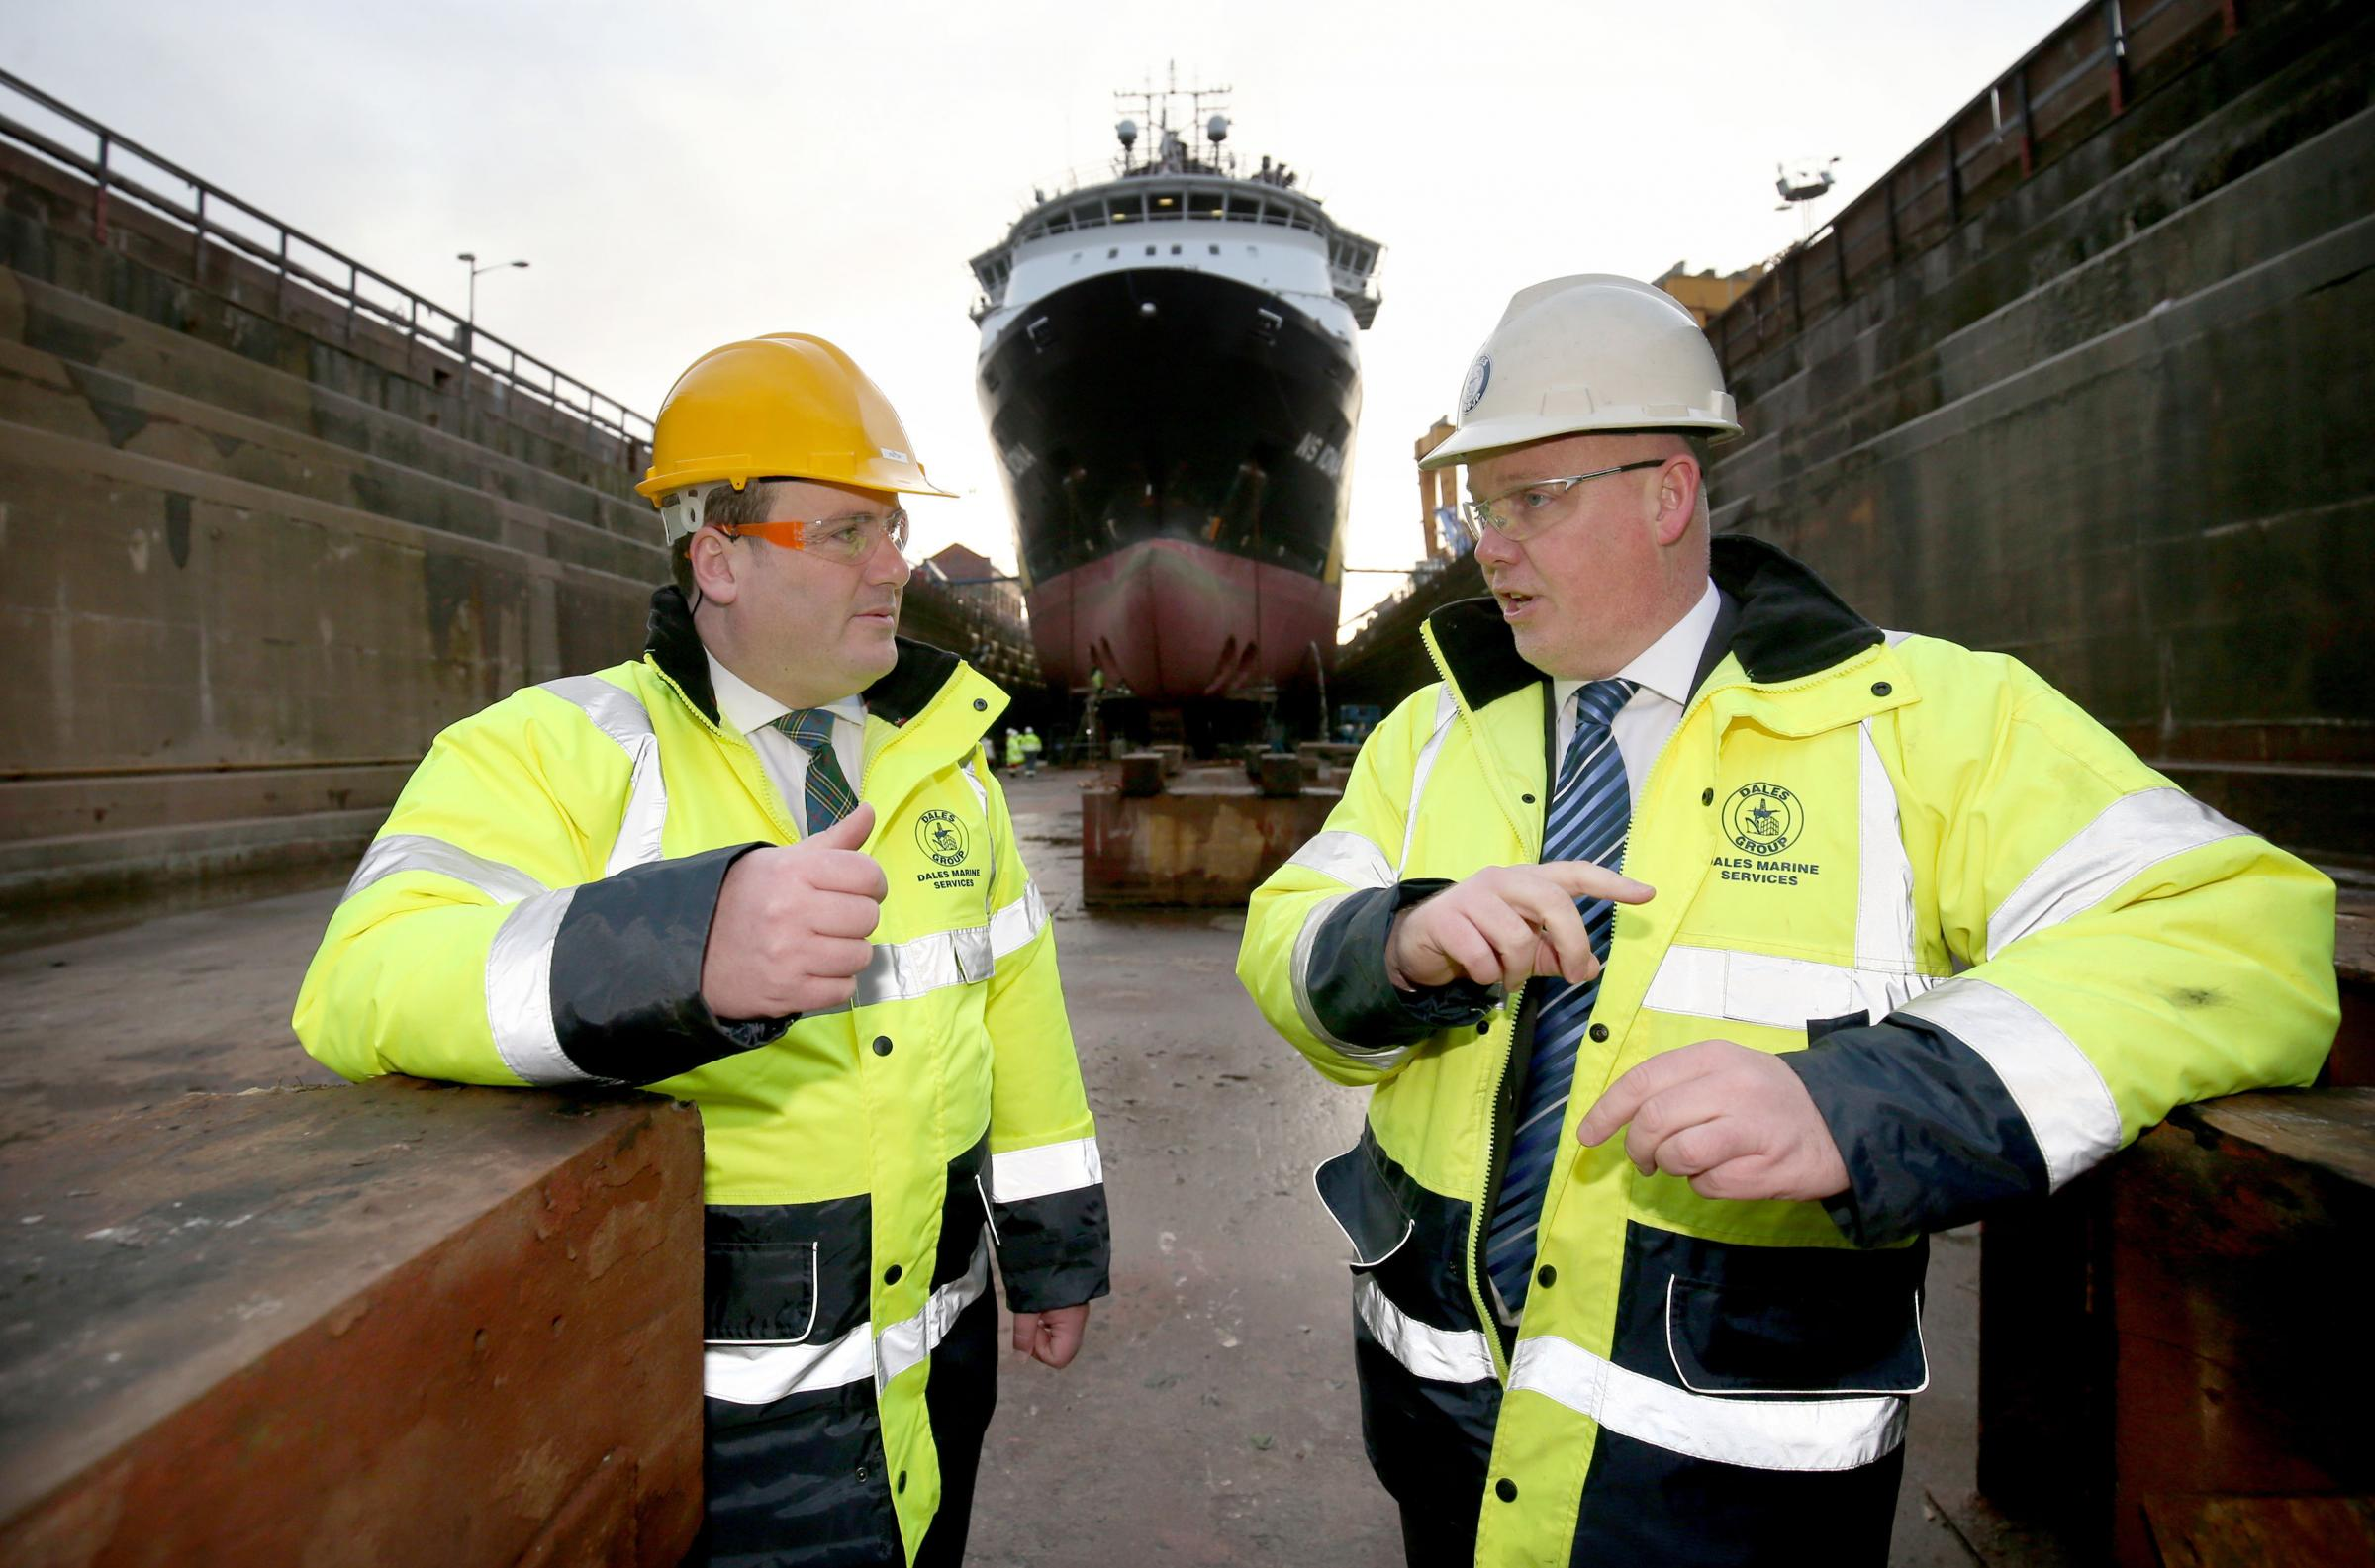 Energy Minister Paul Wheelhouse, left, with Michael Milne, managing director of Dales Marine